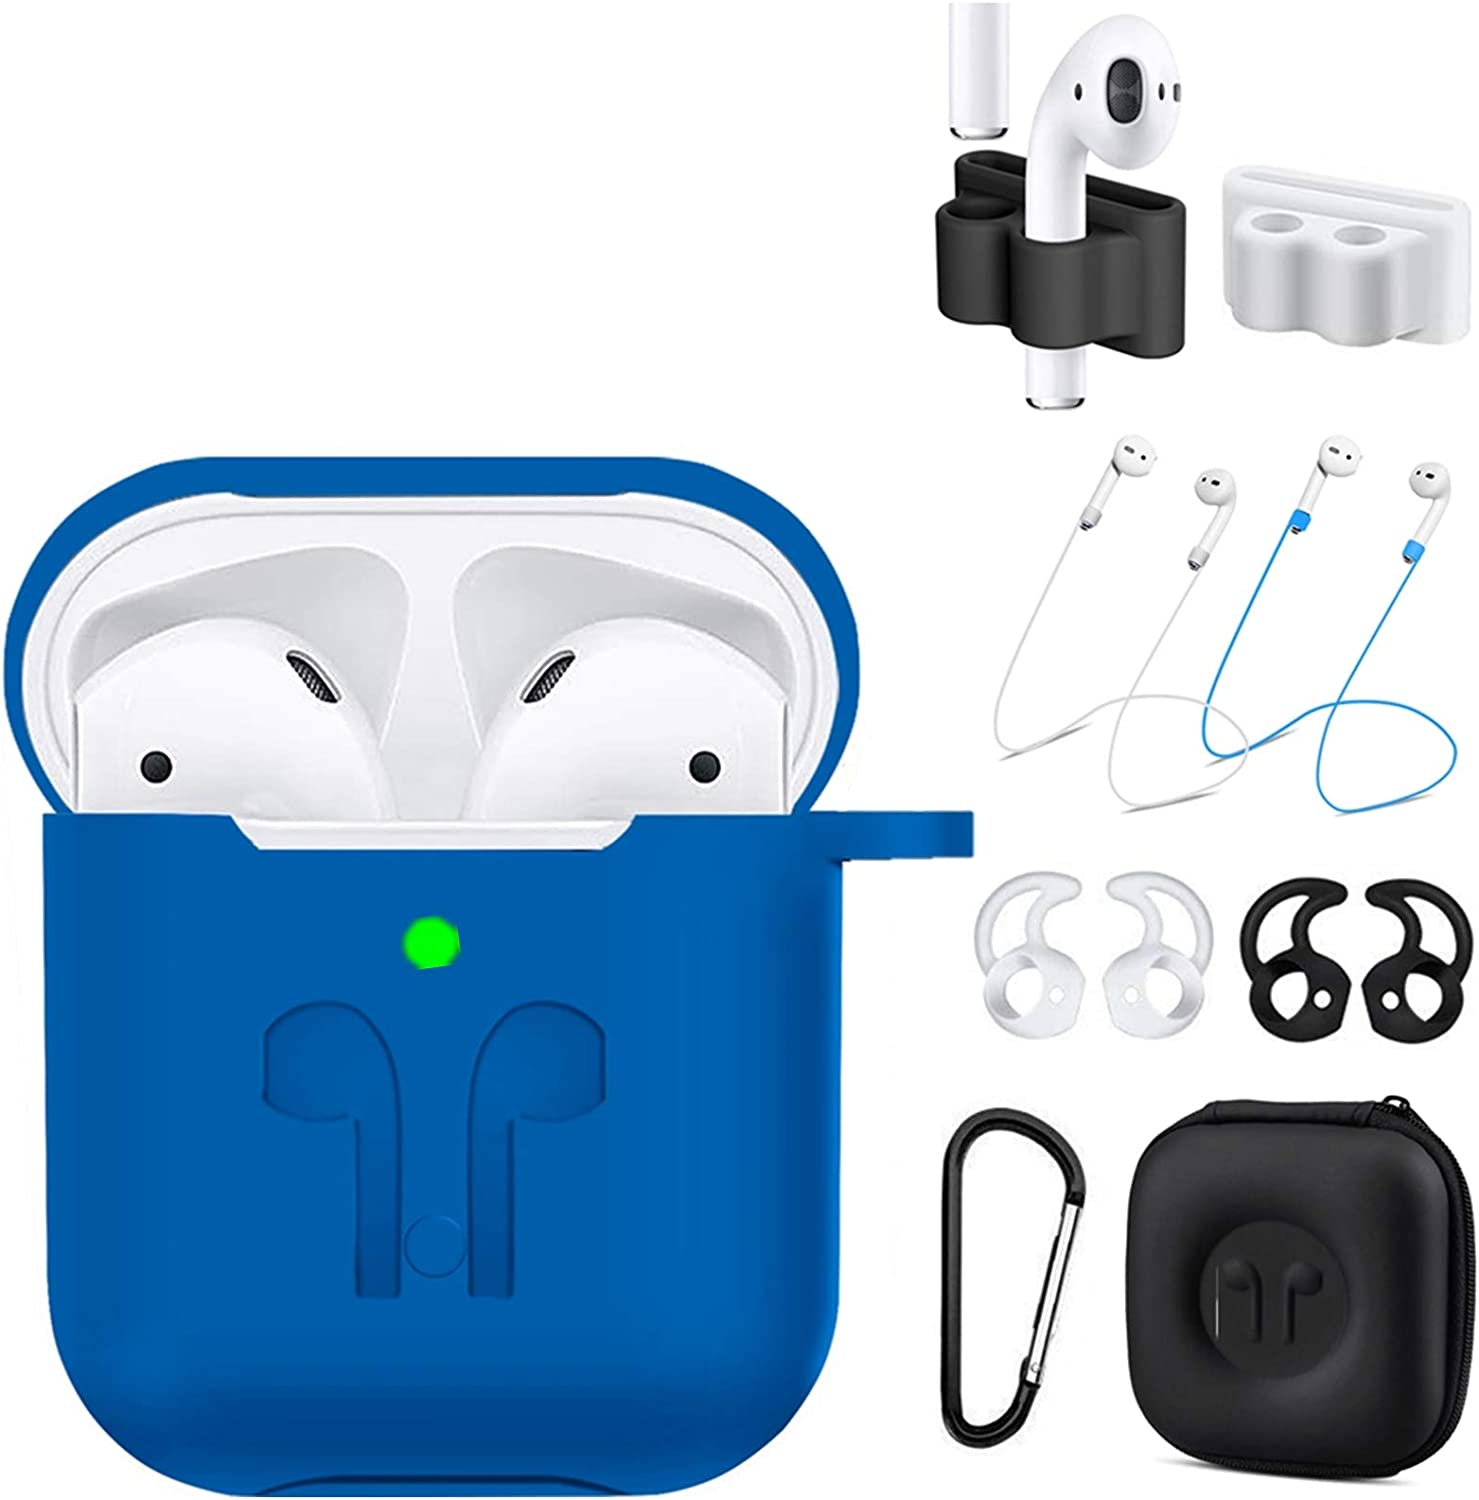 AirPods Case Cover Compatible Apple Airpods 2 & 1[Front LED Visible],9 in 1 Kits Airpods Accessories Set Protective Silicone Skin with Earpods Watch Band Holder/Ear Hook/Stap/Clip/Keychain/Grip